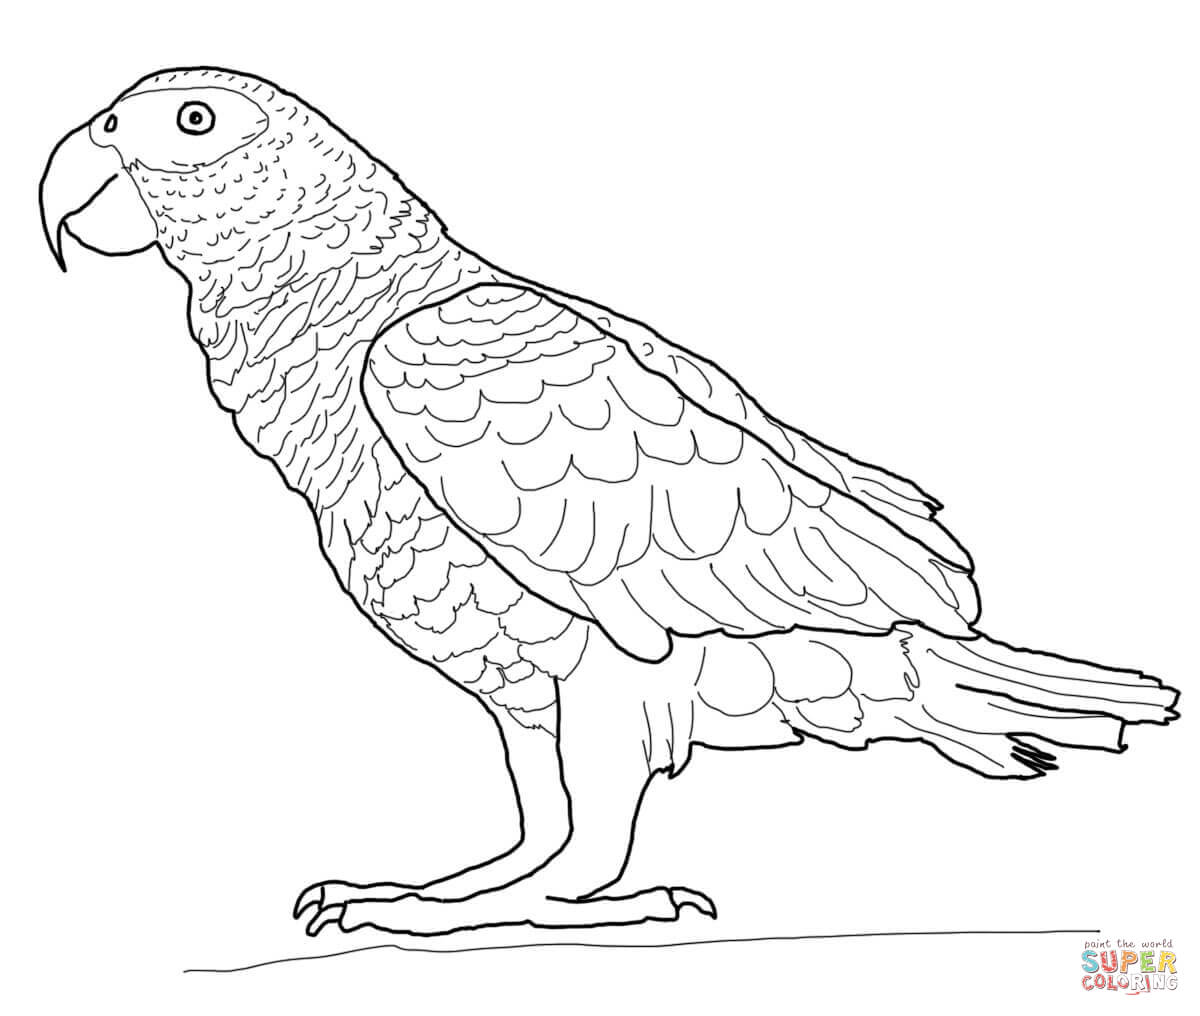 colouring picture of parrot free printable parrot coloring pages for kids colouring picture of parrot 1 1